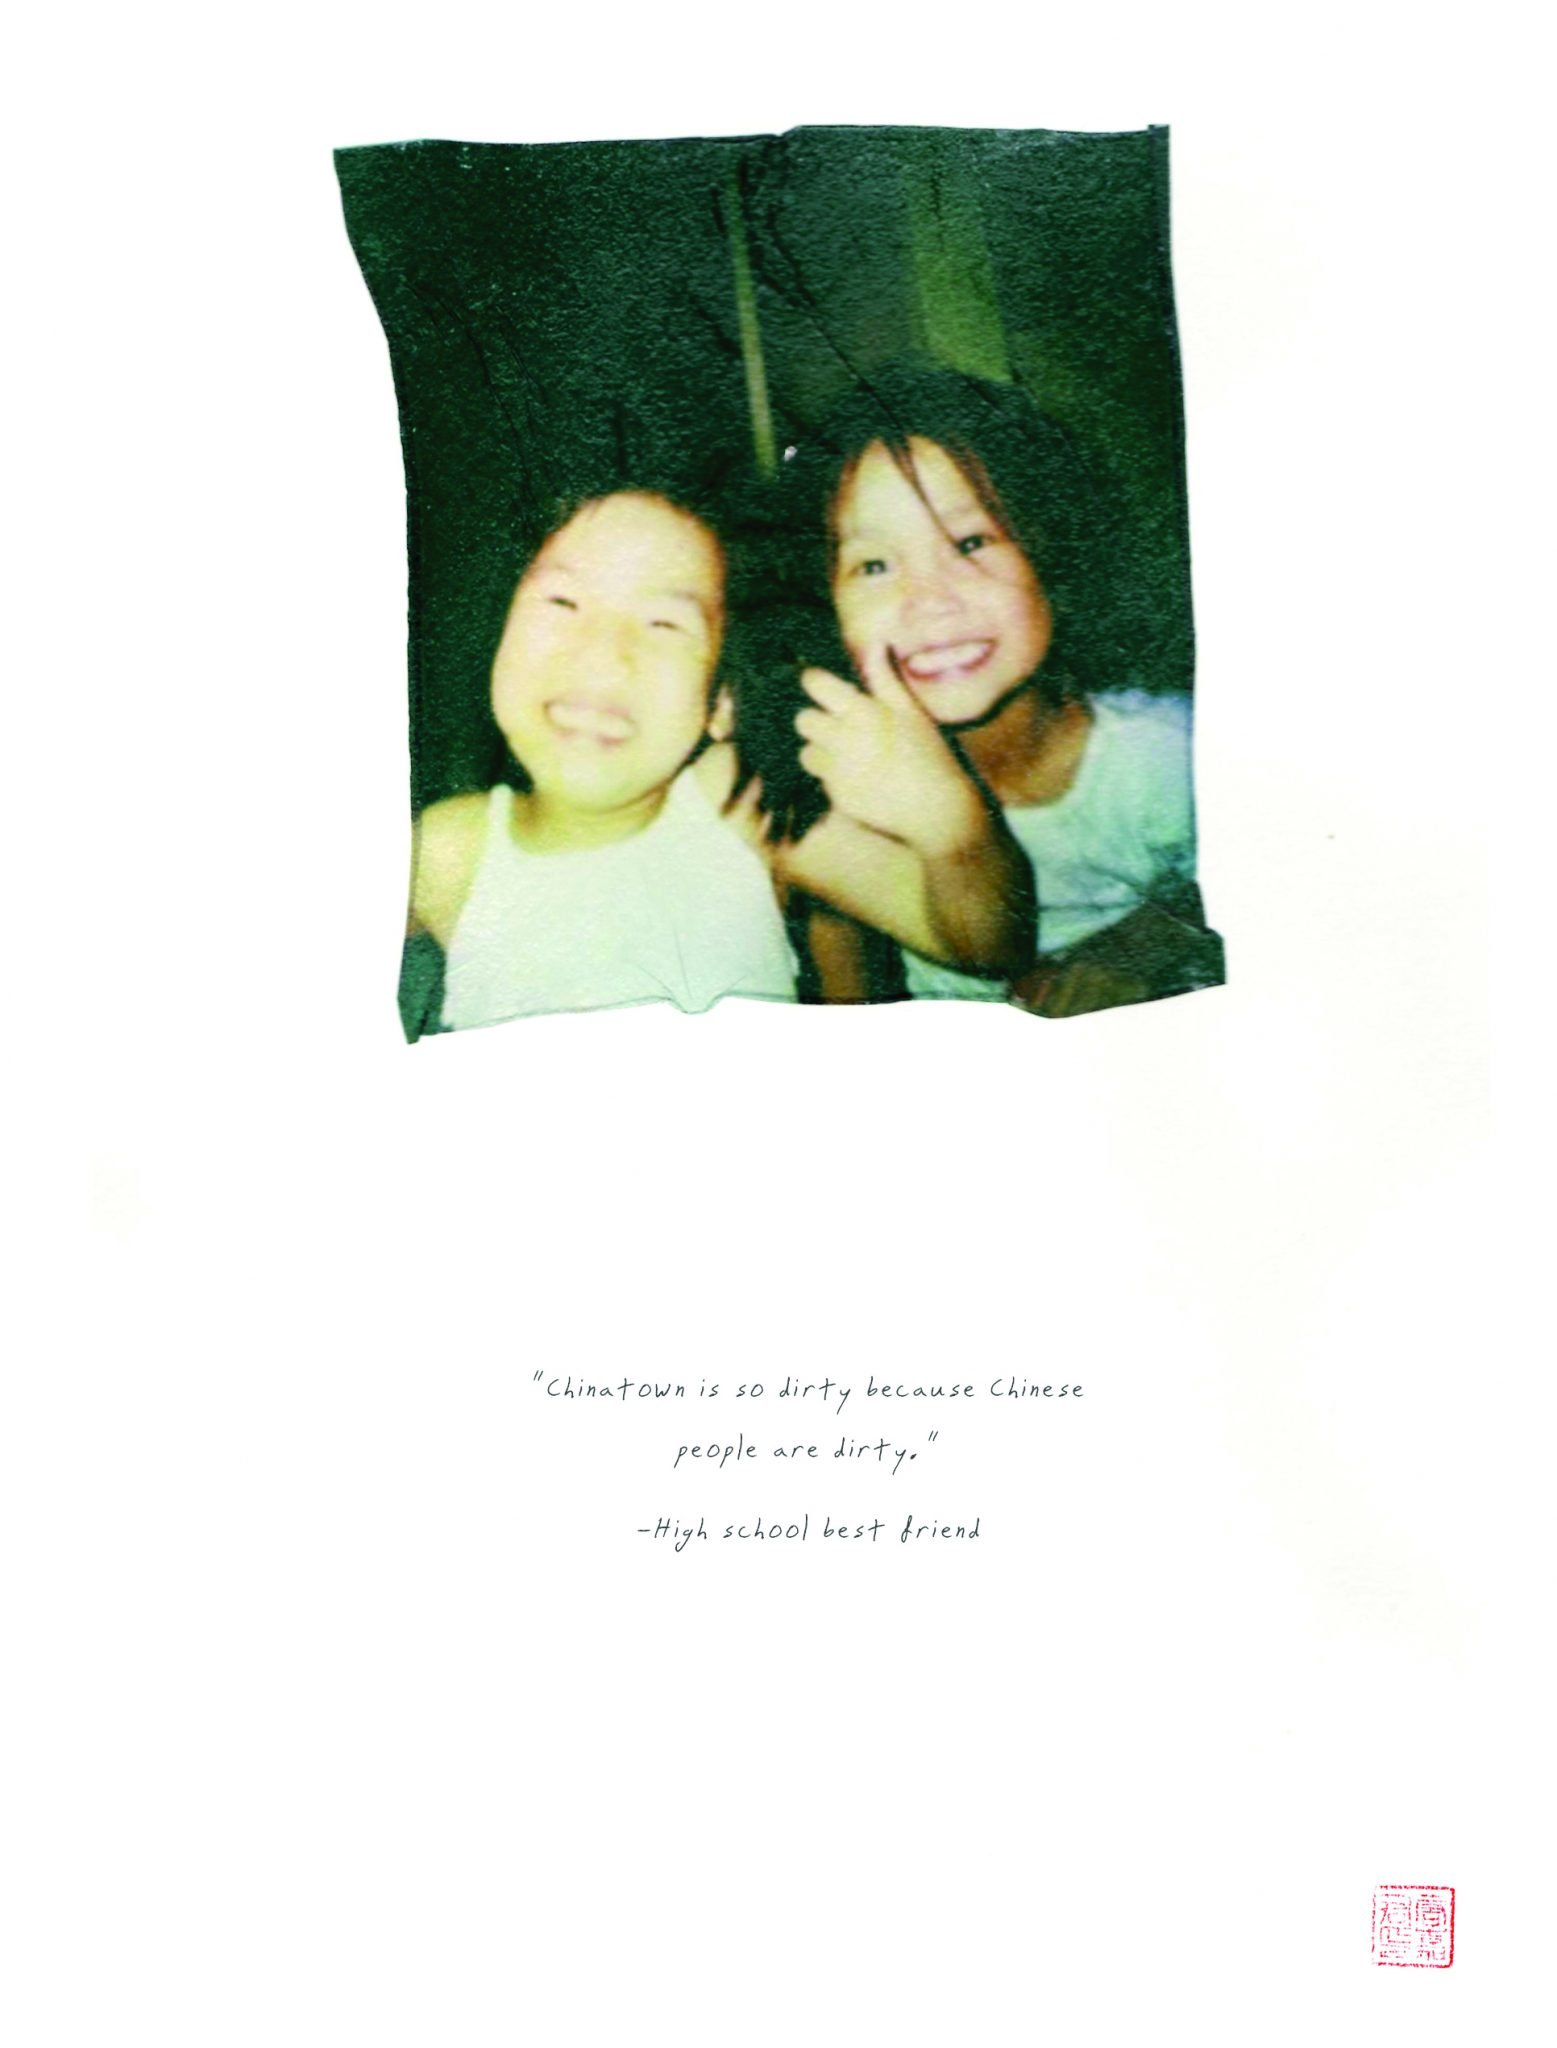 """polaroid emulsion of of two children and words """"Chinatown is dirty because chinese people are dirty"""""""